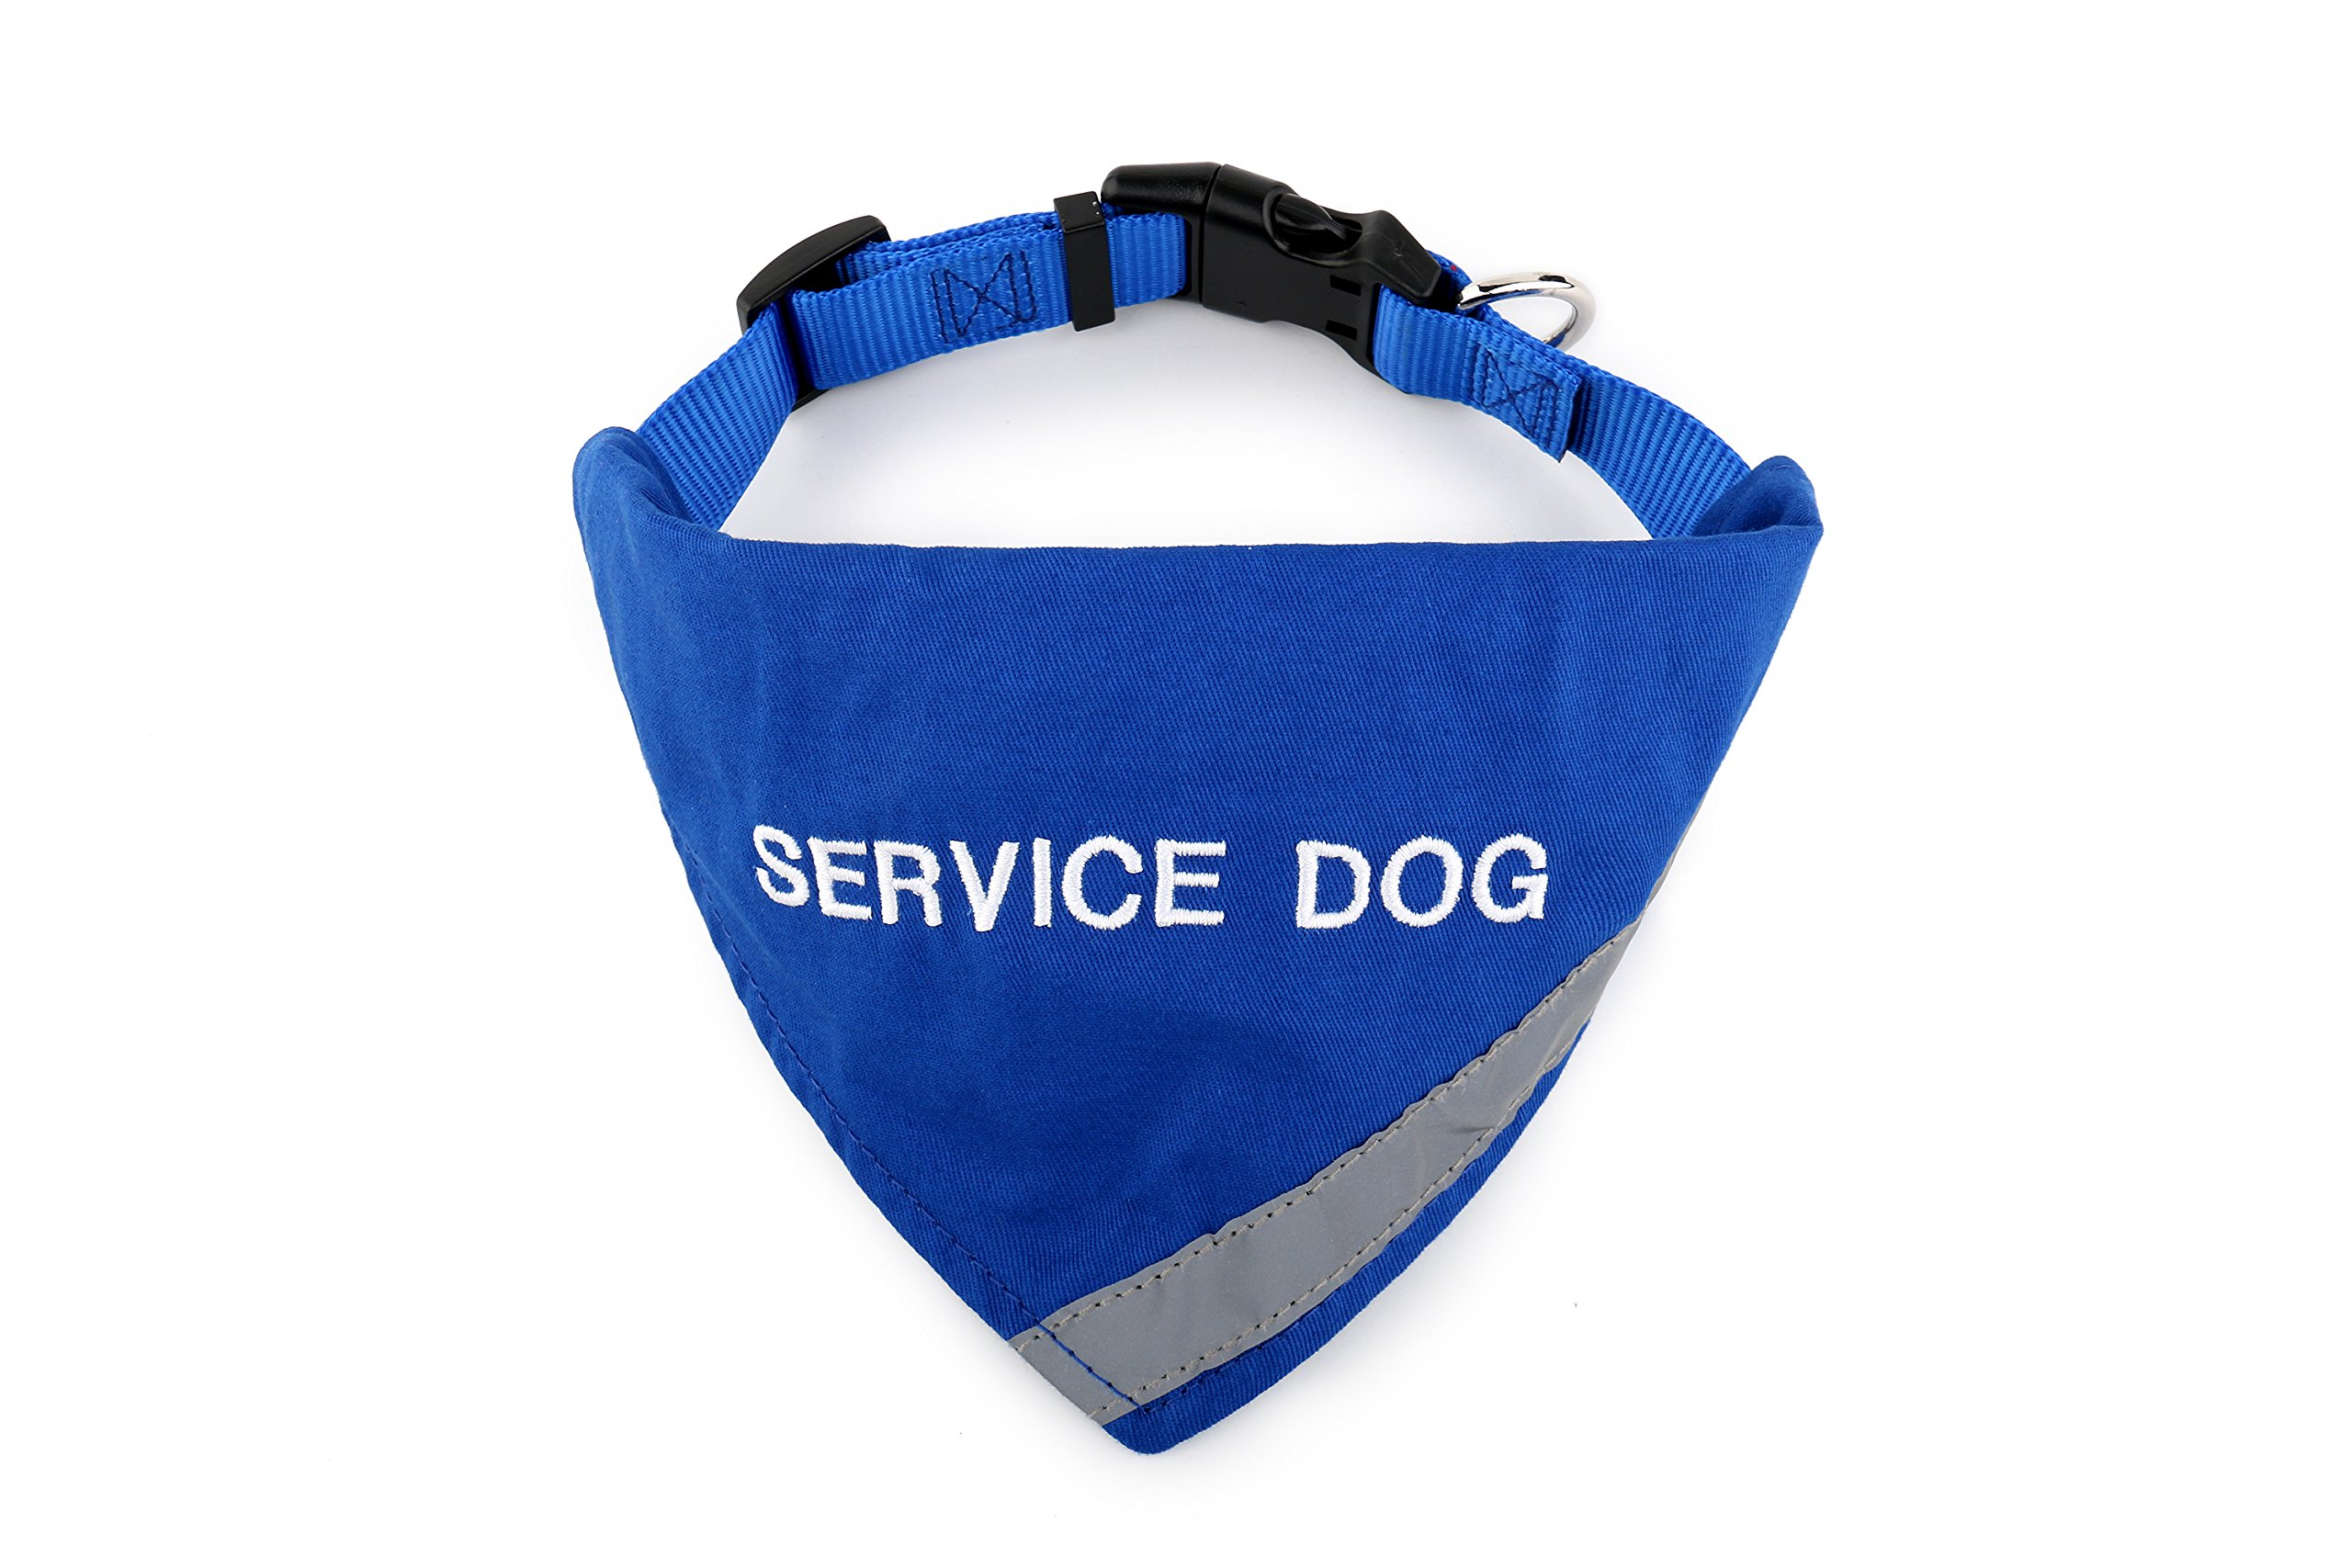 BANDANA embroidered with ''SERVICE DOG'' | Reflective Strip for pet safety | Built in matching collar to keep bandana secure | Metal ring to attach leash | Four Colors | All Sizes (X-Small to Large)